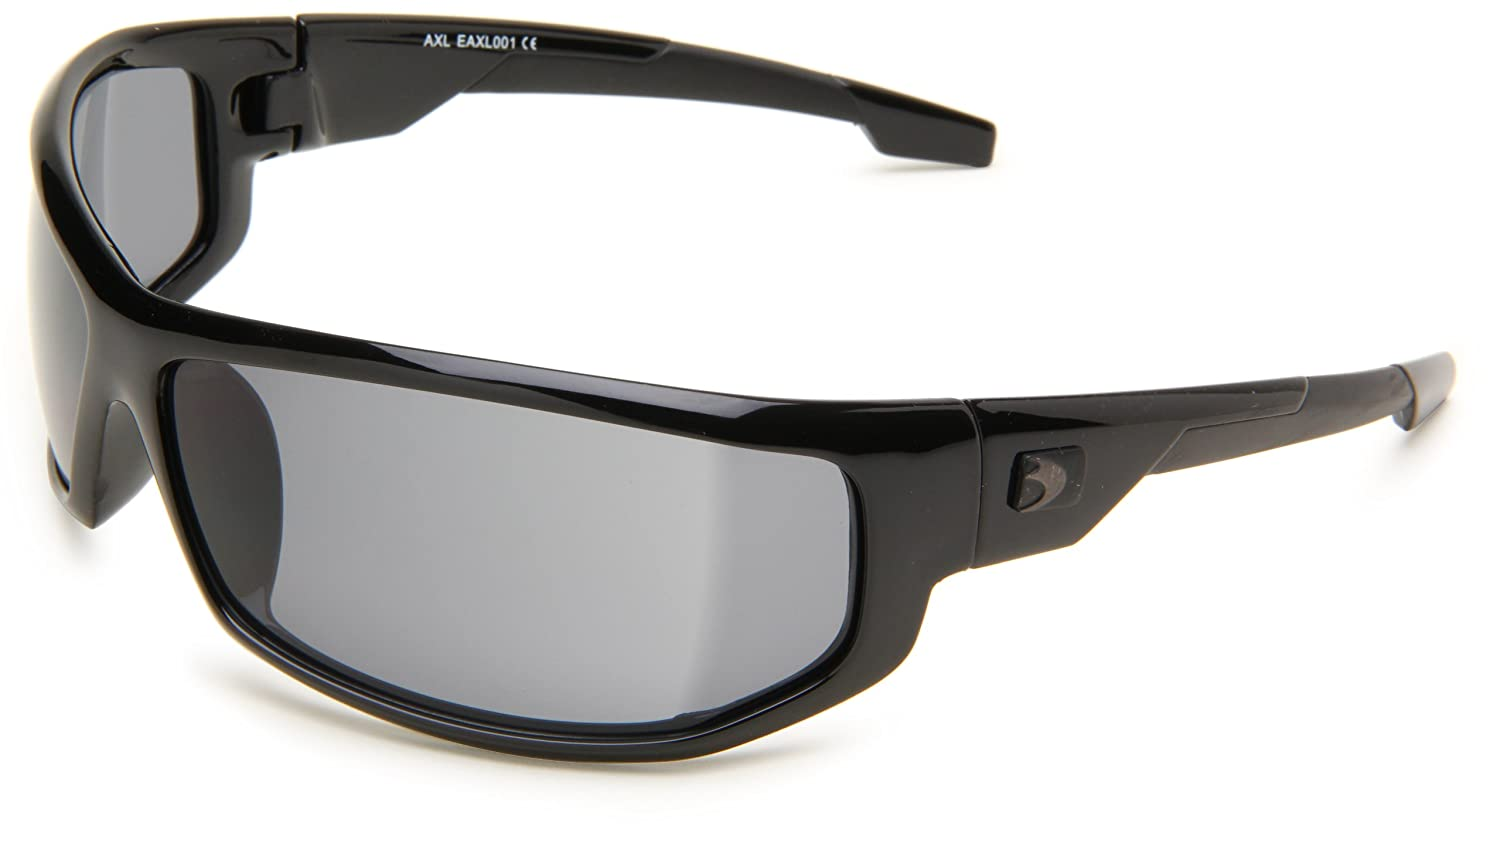 Bobster AXL EAXL001C Wrap Sunglasses, Black Frame/Clear Lens, One Size